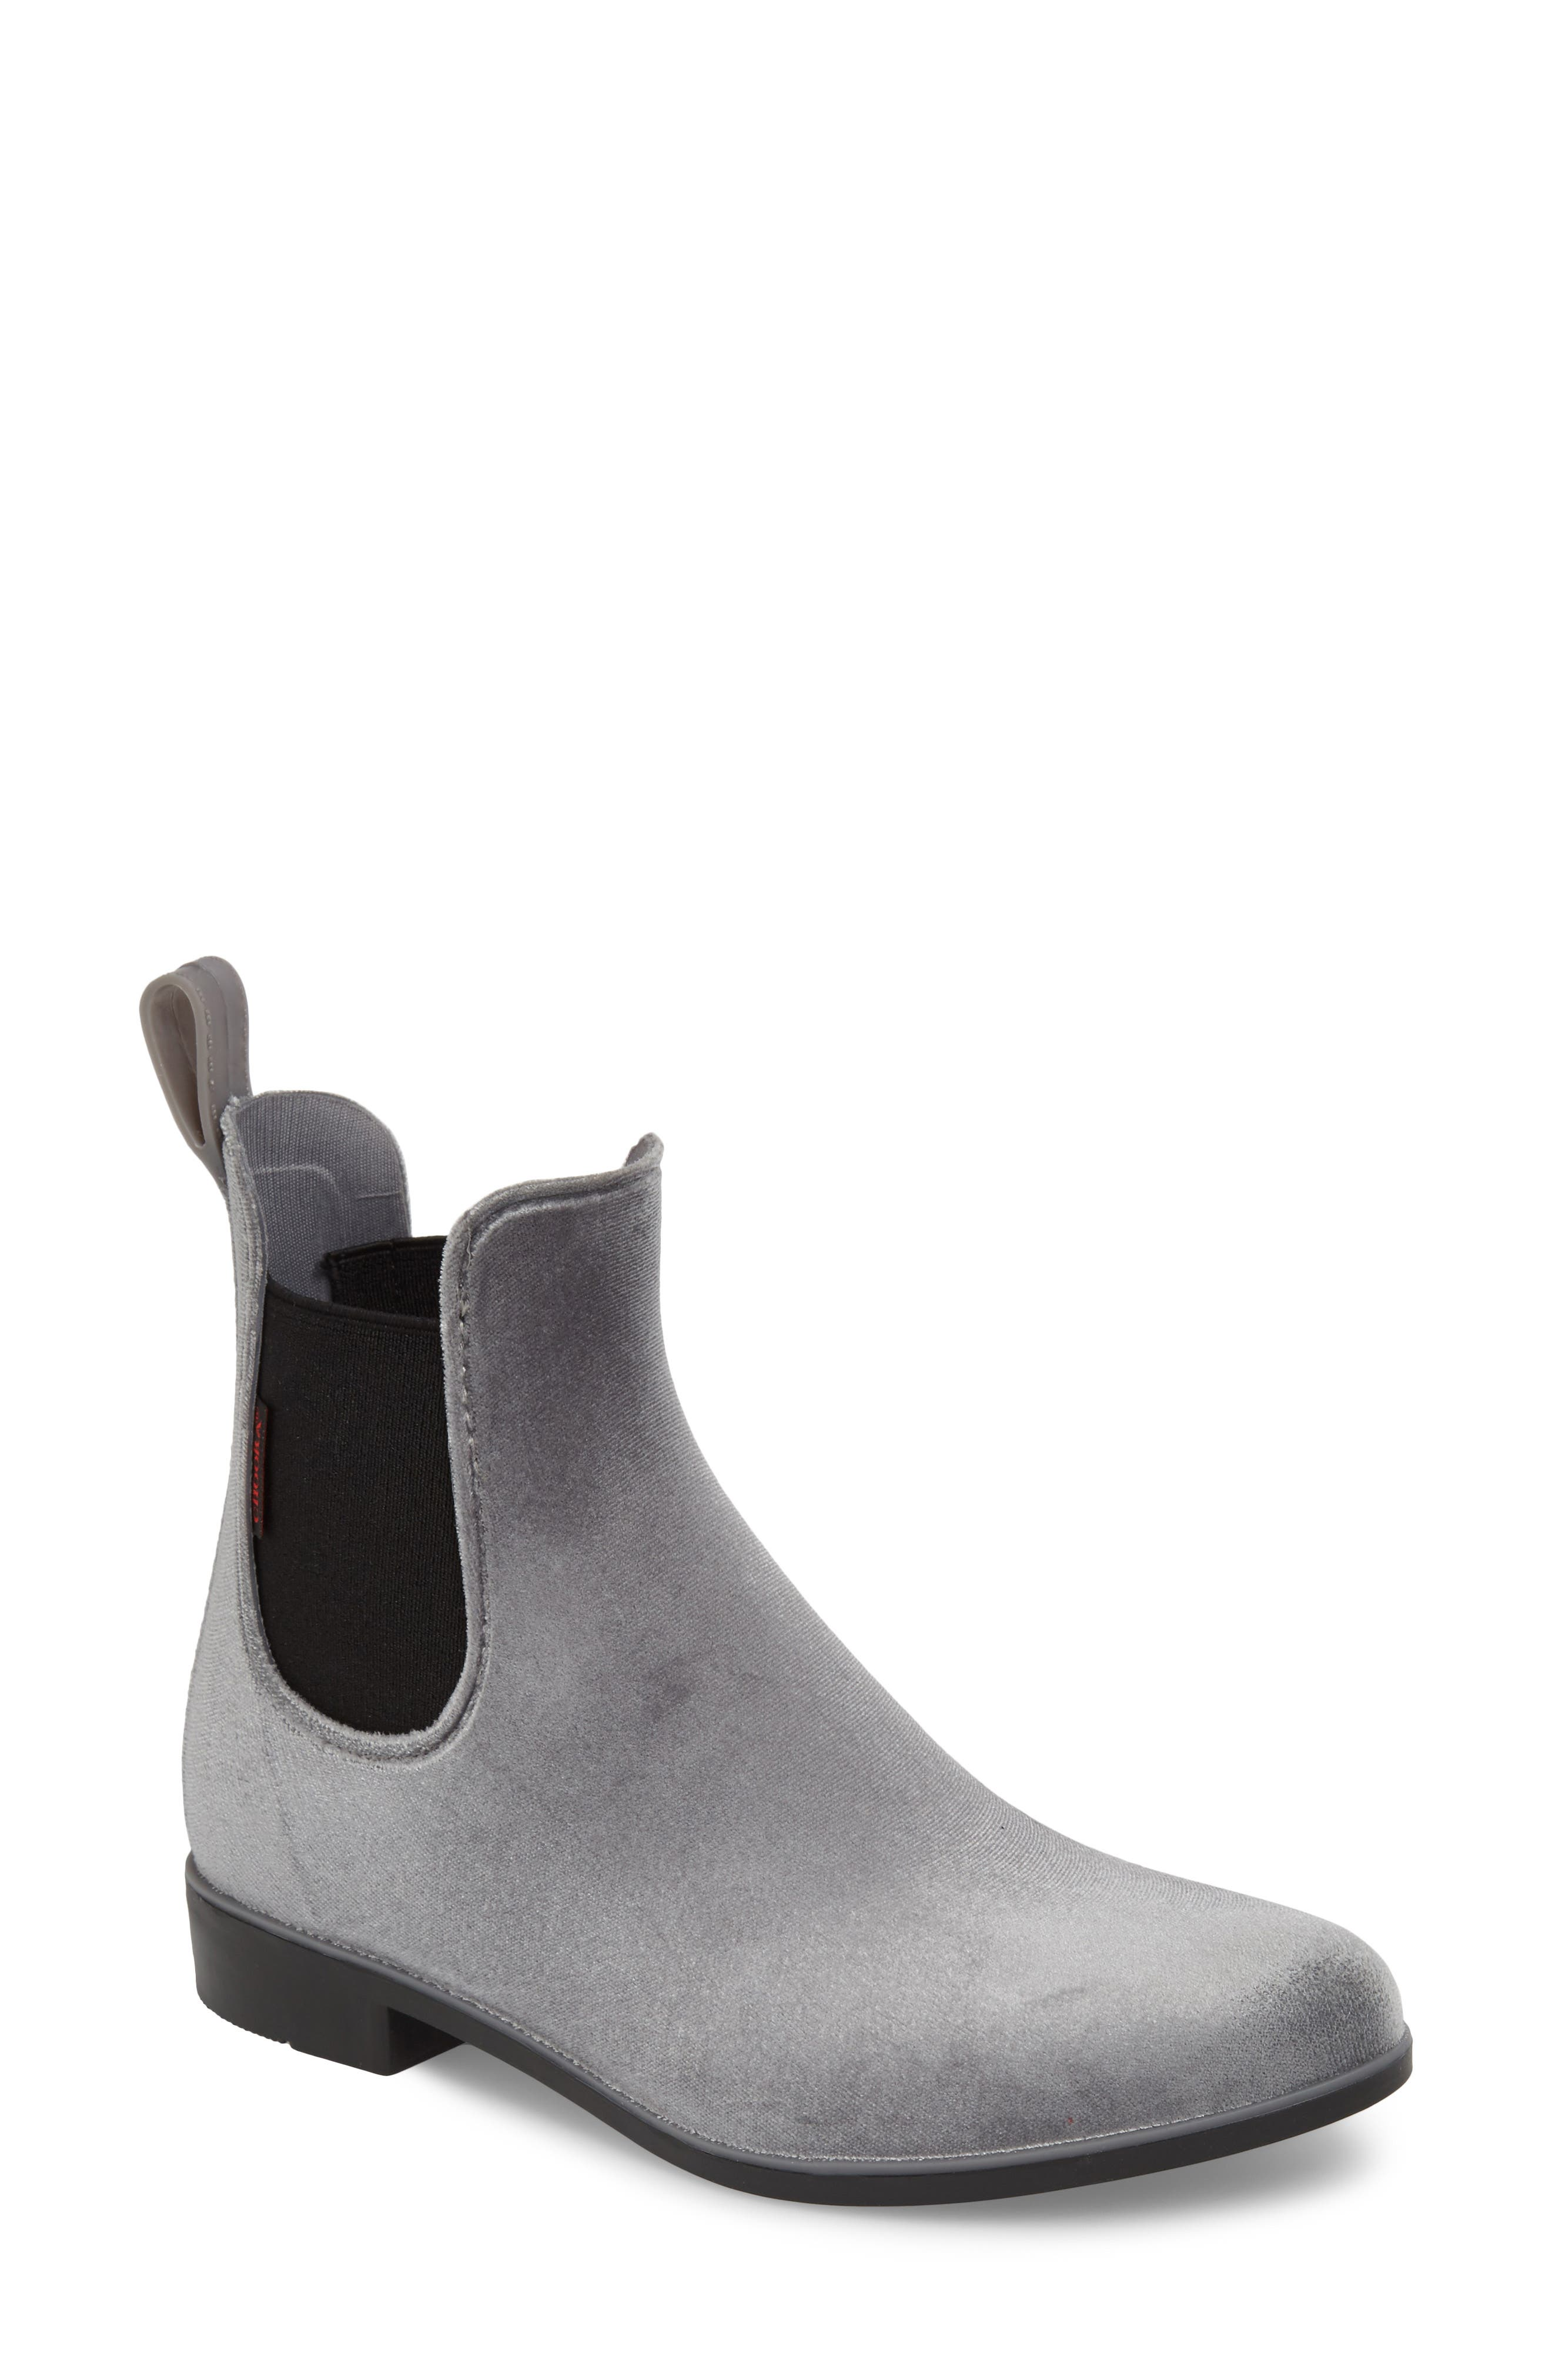 Chooka Waterproof Velvet Chelsea Waterproof Rain Boot, Grey